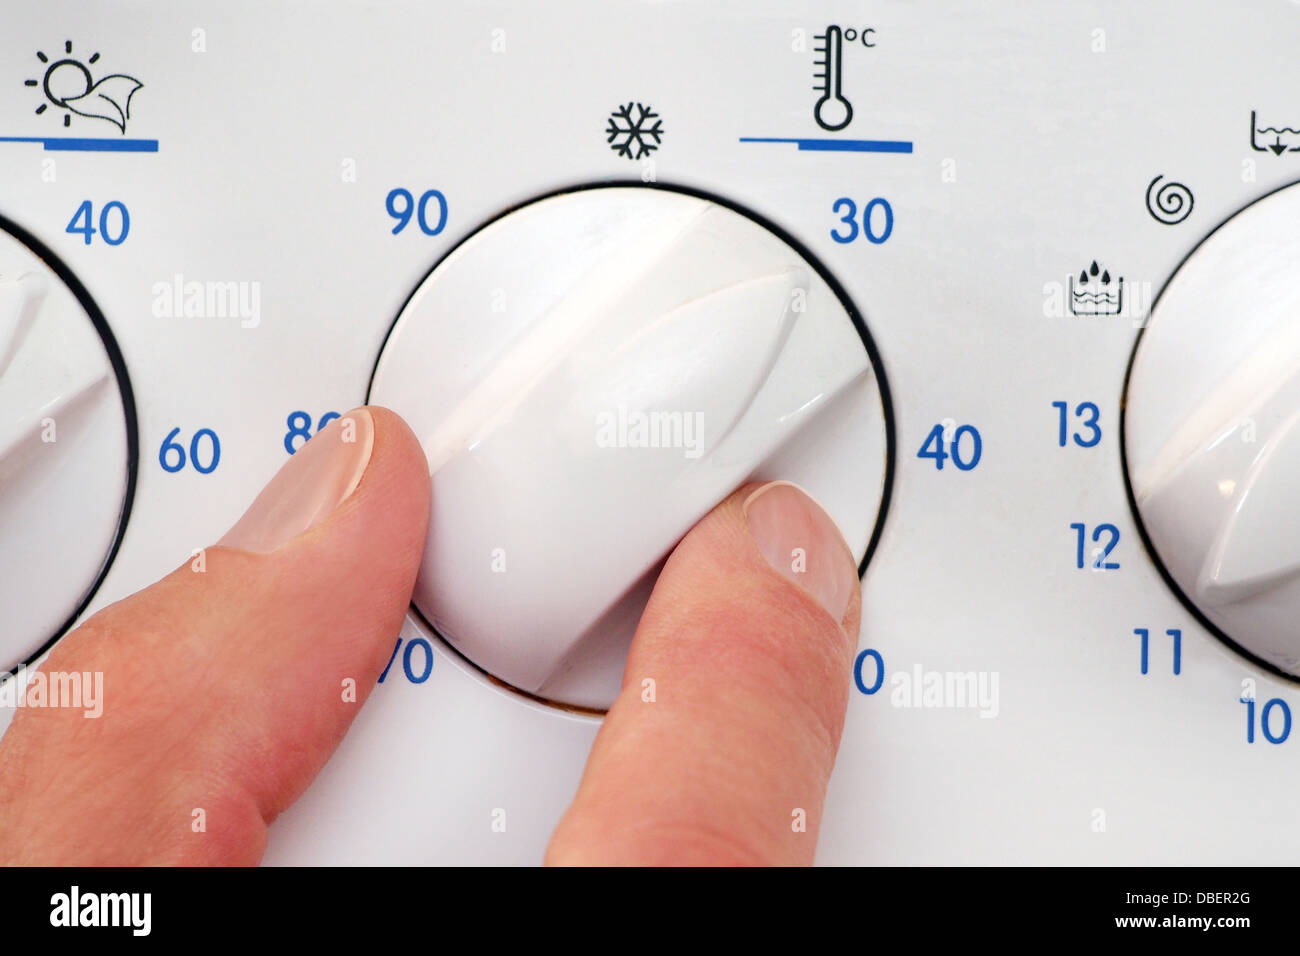 Person adjusting temperature dial of a washing machine - Stock Image